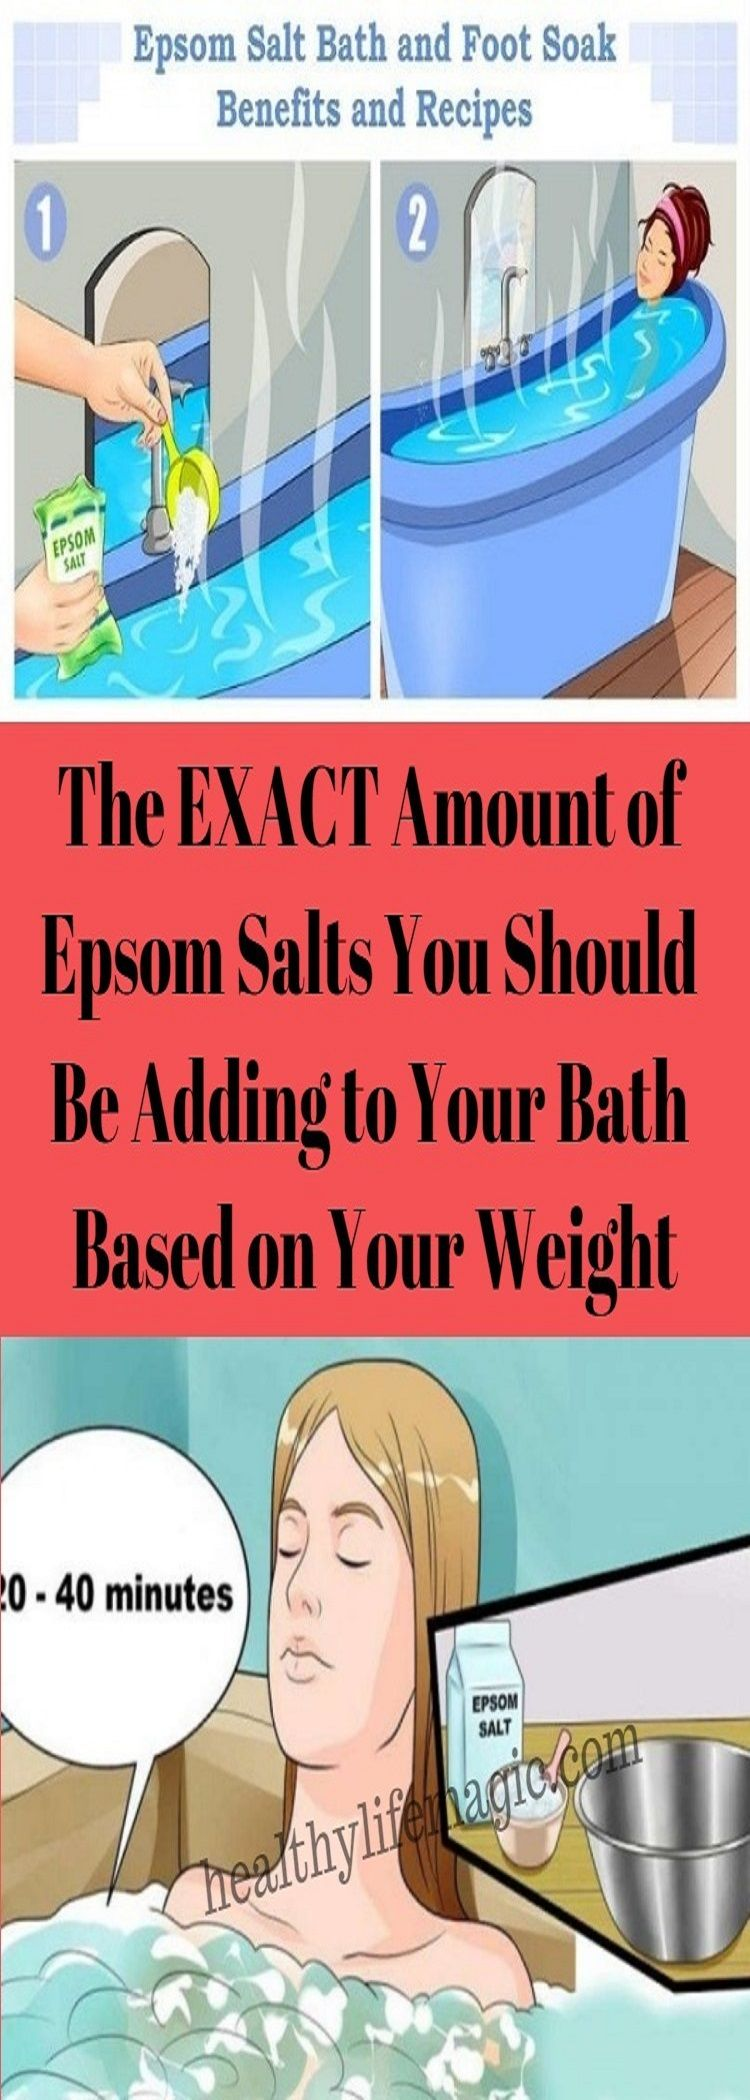 The EXACT Amount of Epsom Salts You Should Be Adding to